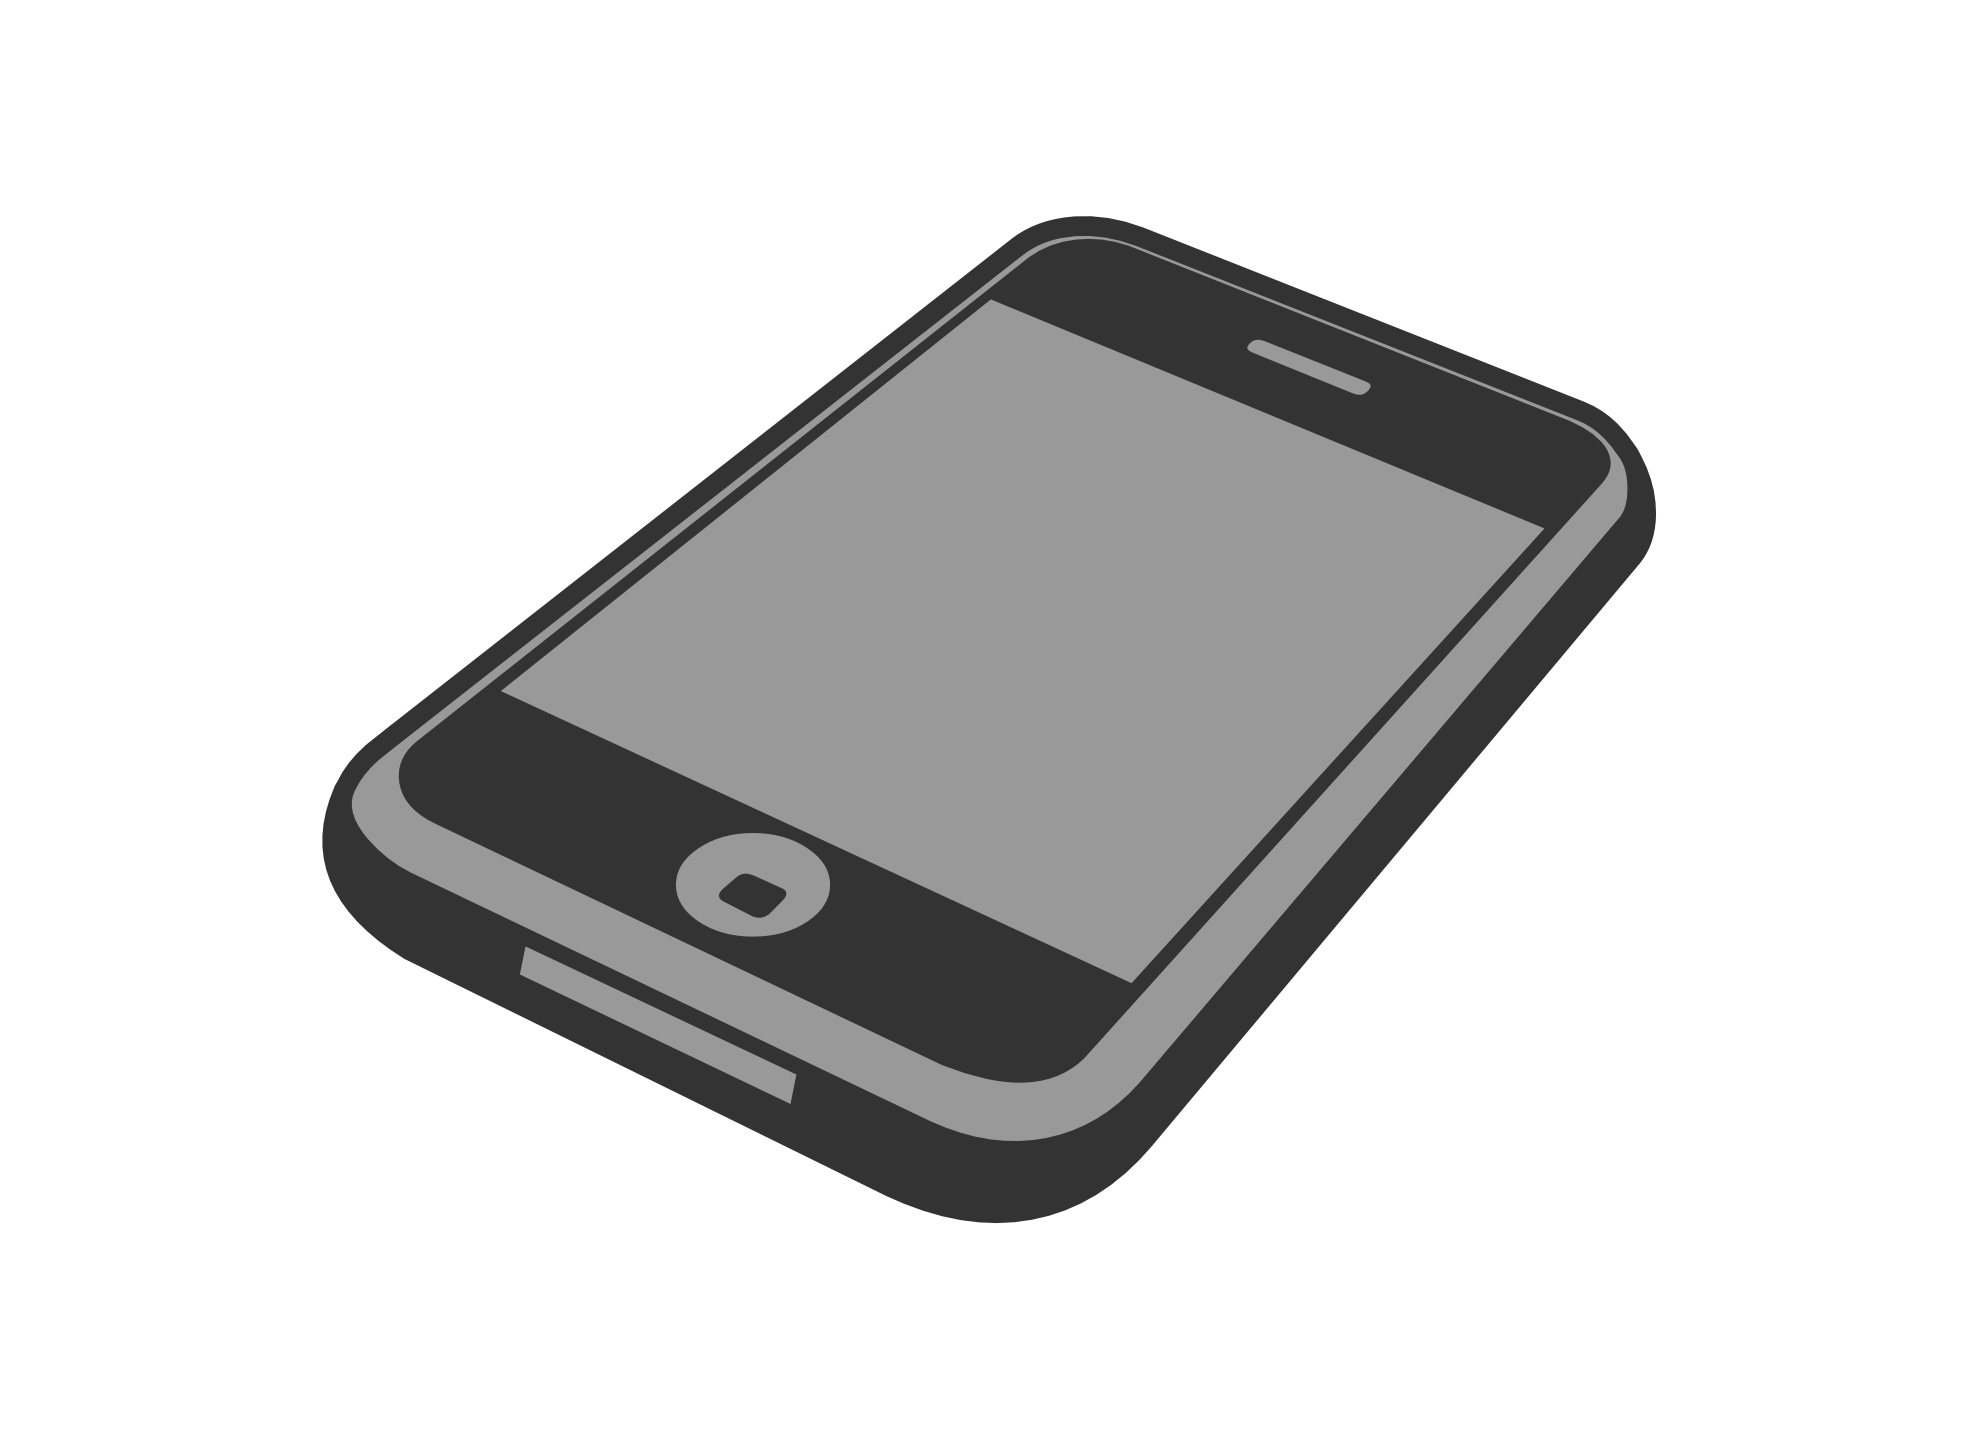 iphone svg slate grey